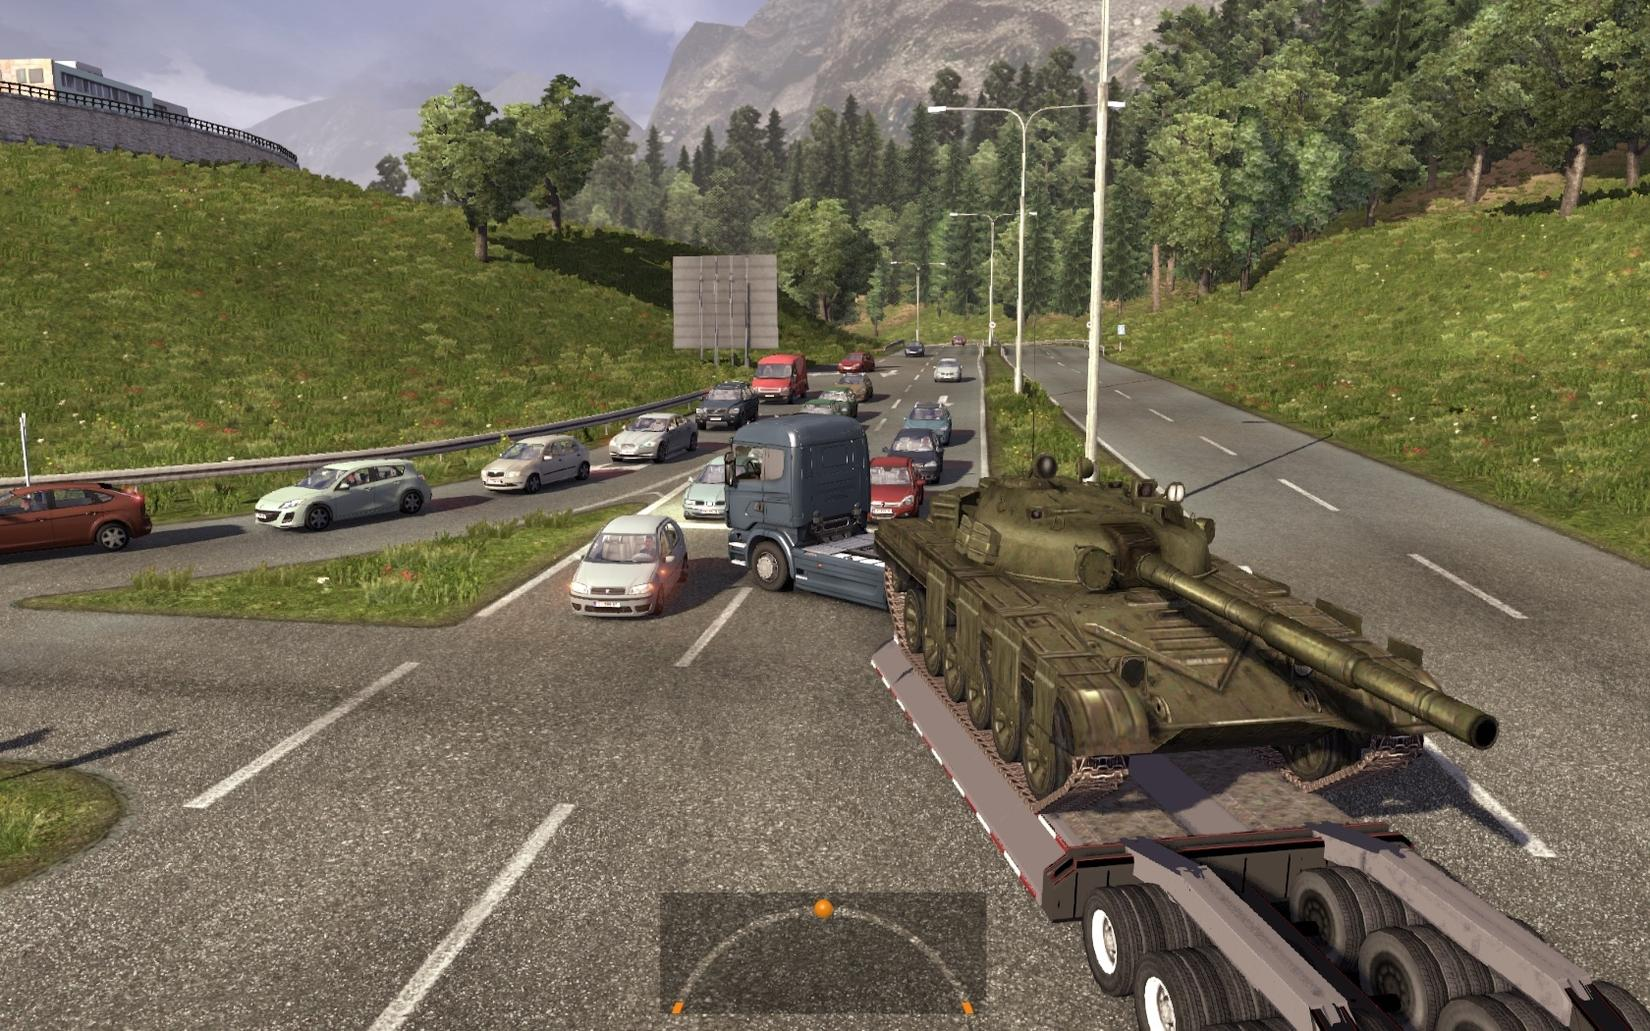 Tank trouble picture click for details tank full of trouble thumbnail